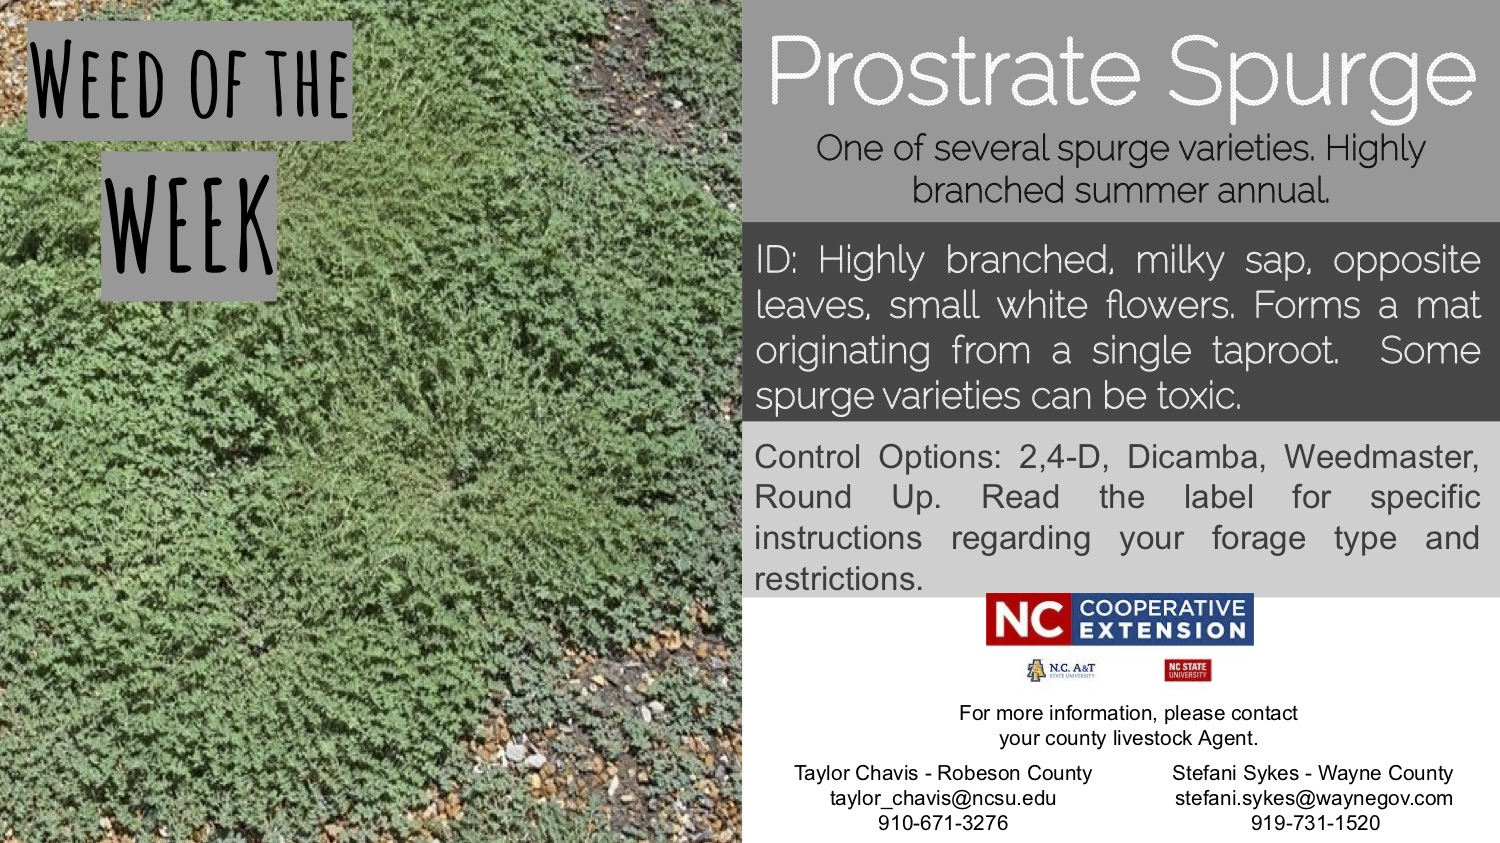 Information on the week prostrate spurge.